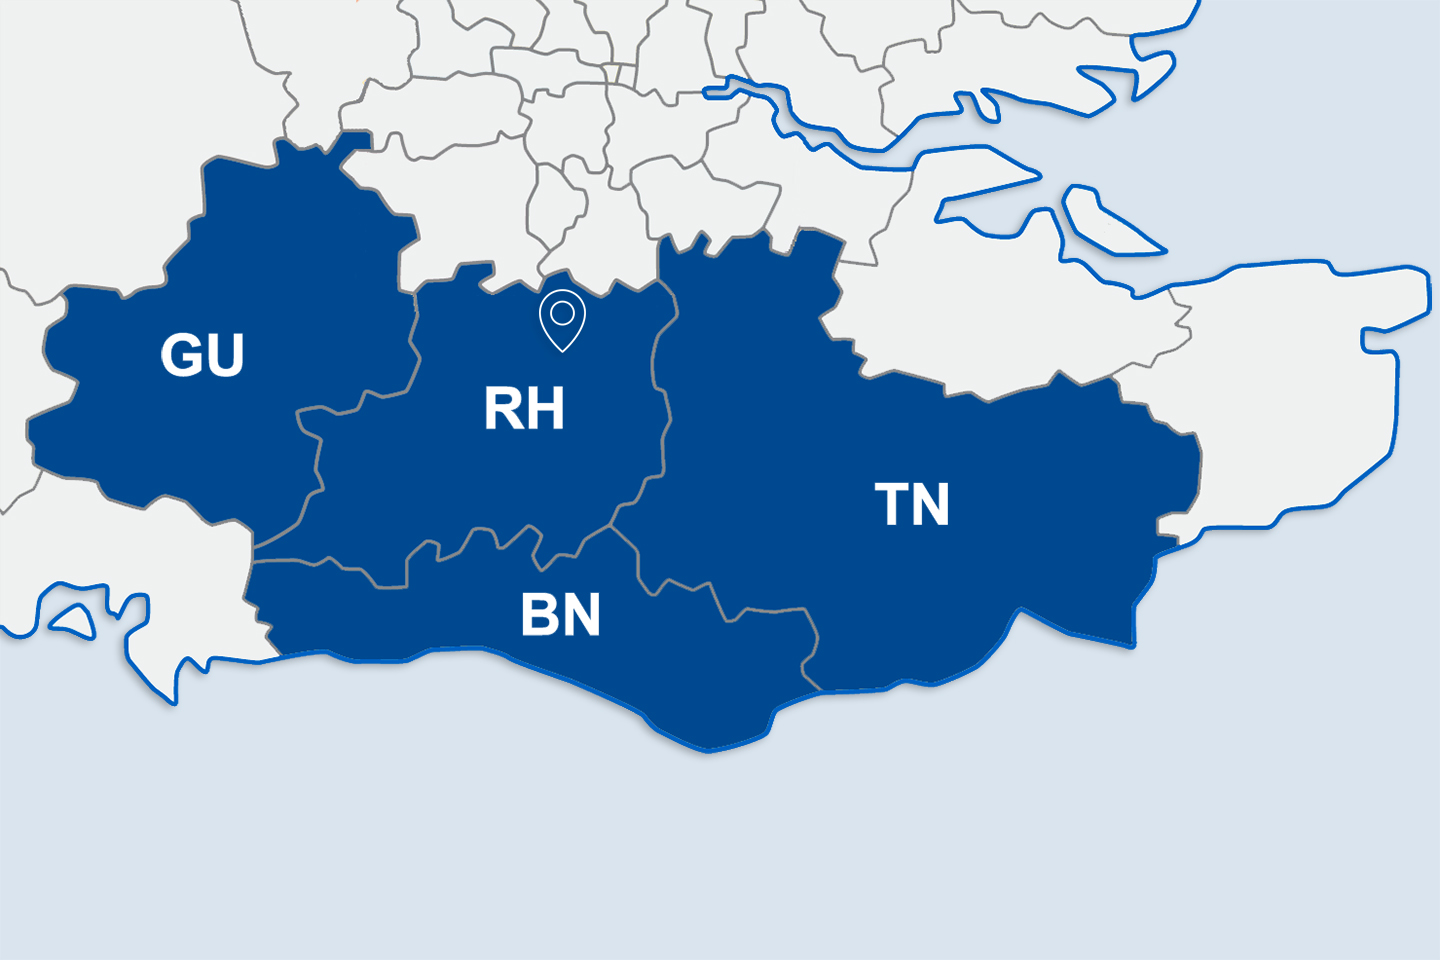 A map showing the areas residents qualify for the Local Discount Scheme